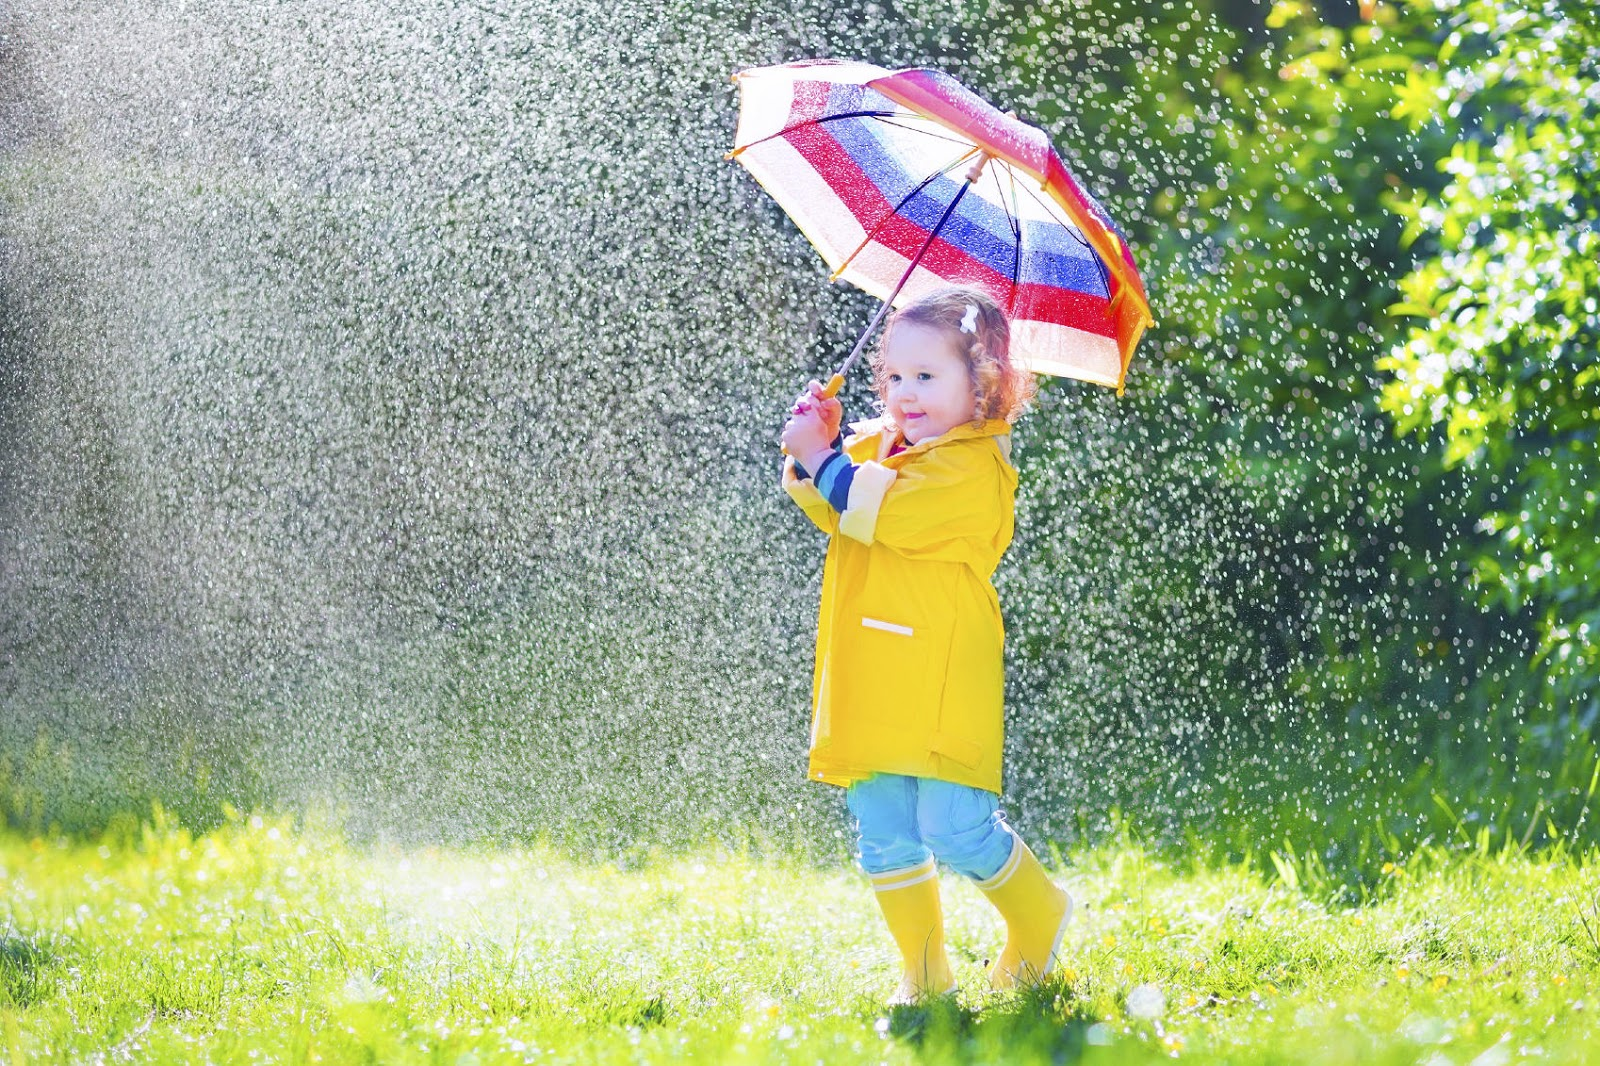 4 Fun Things to Do with Your Kids on Rainy Days